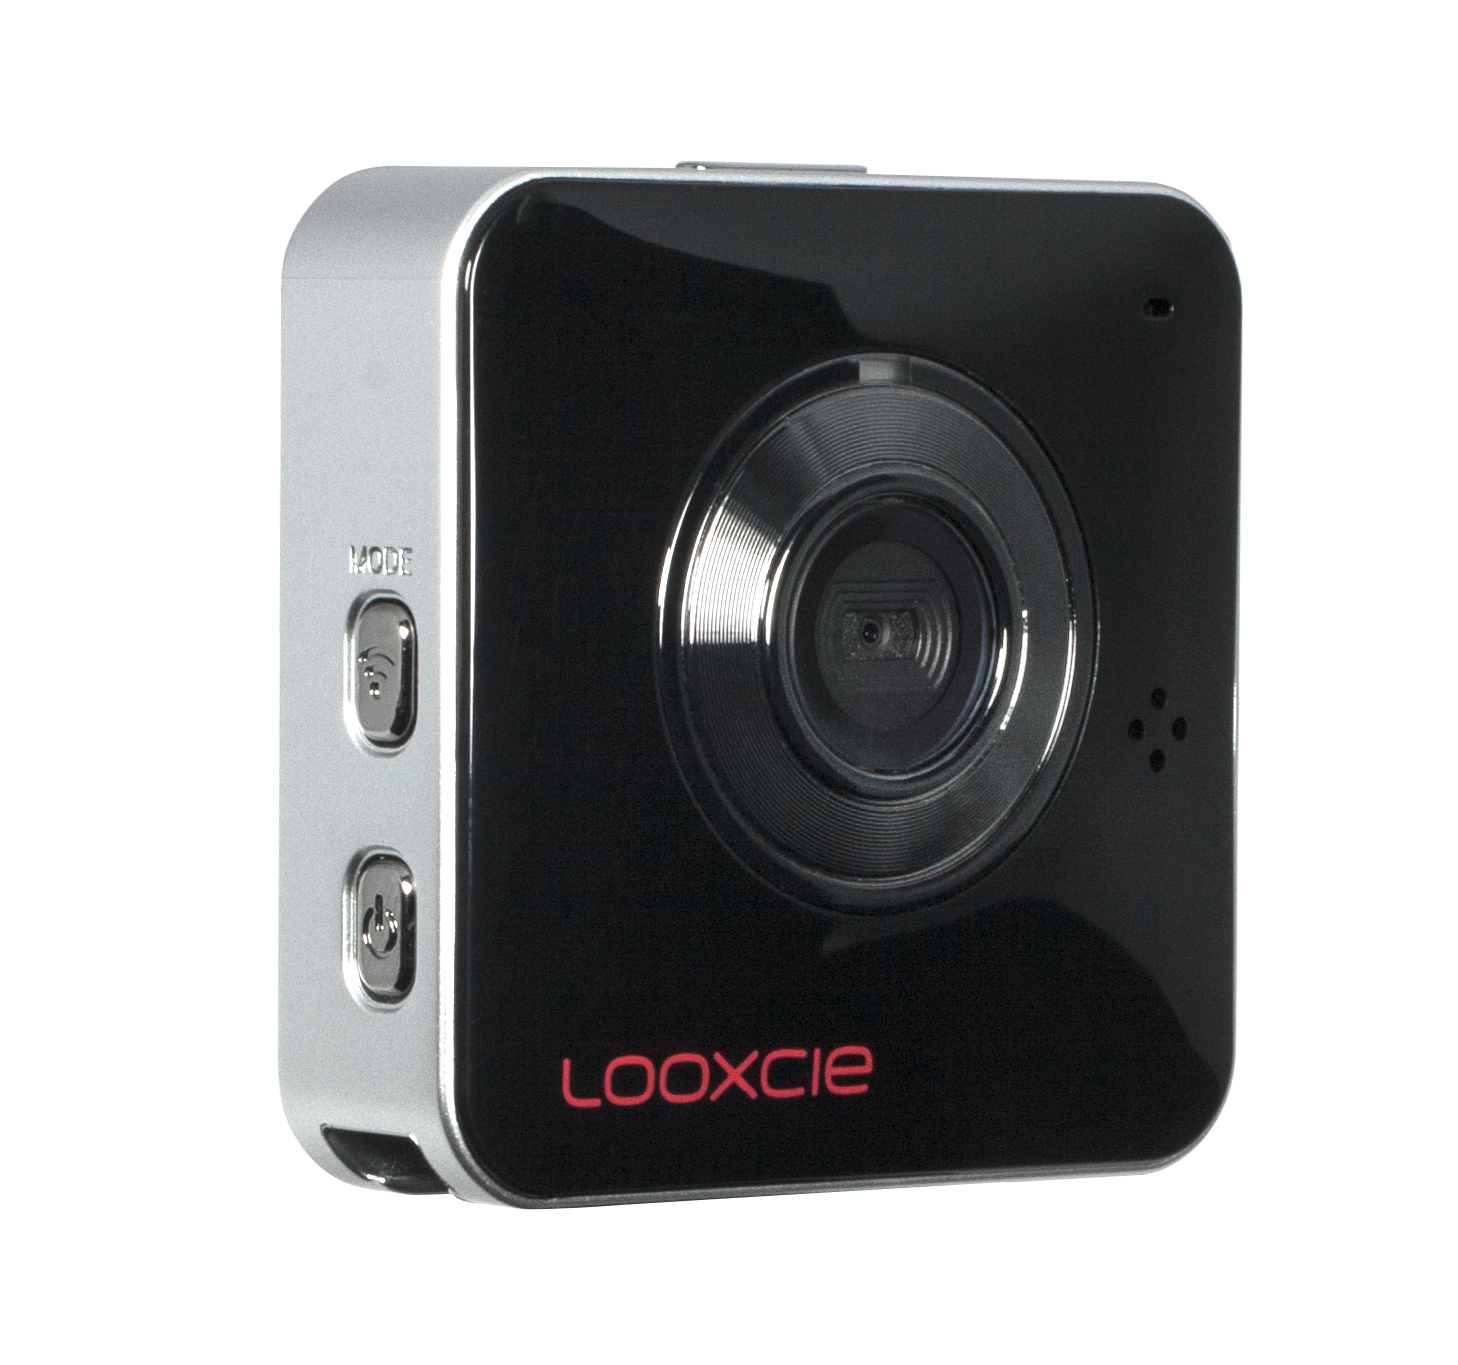 Looxcie 3 Camera (right angle) - CLEAR Background